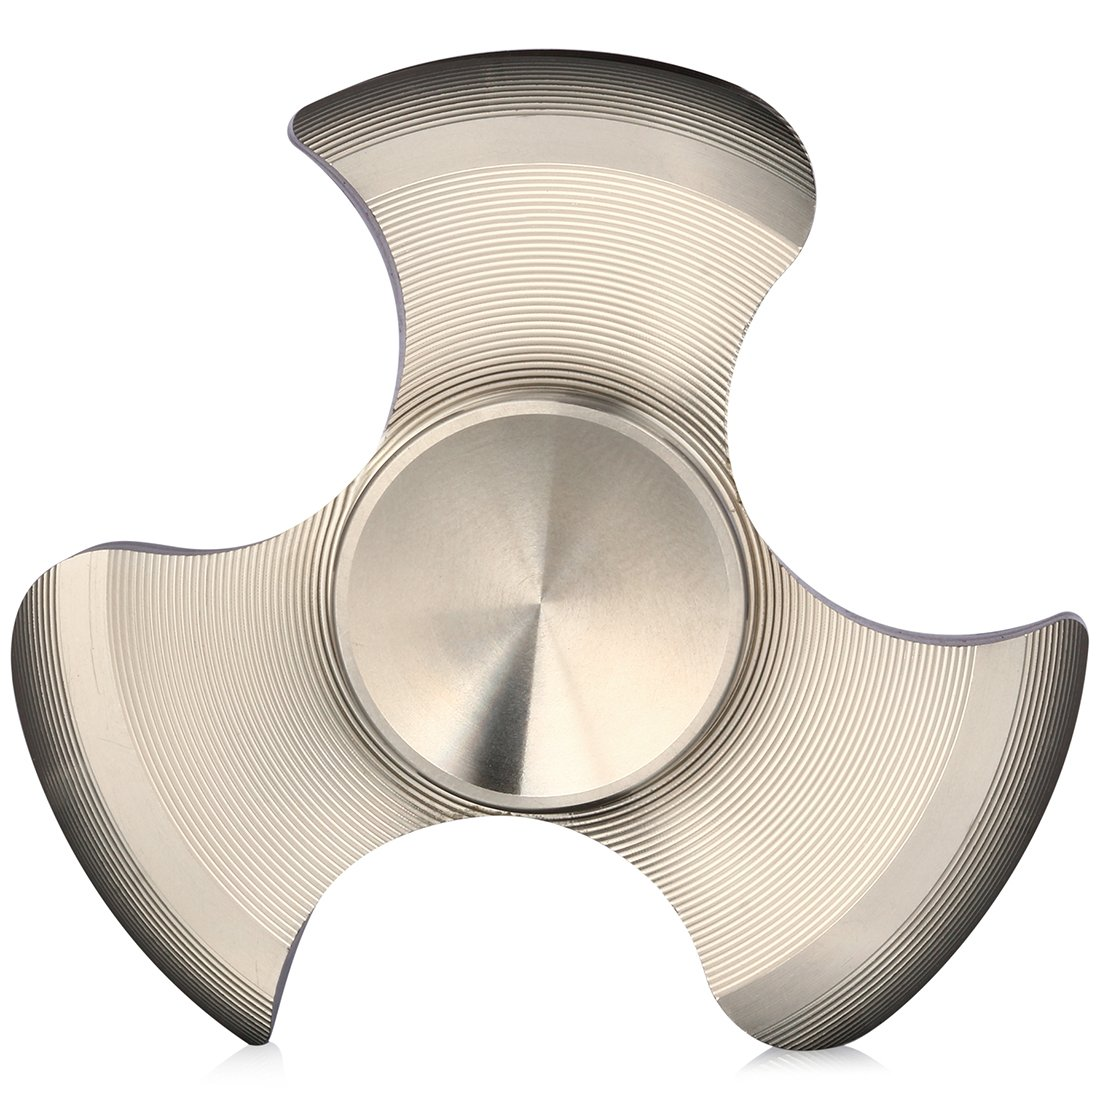 ILoveFidget Hand Spinner up to 6 minutes spin time fine solid Stainless Steel Fidget Spinner with premium finish R188 bearing for smooth fast silent spinning. Stress Relief EDC toy Tri Bar